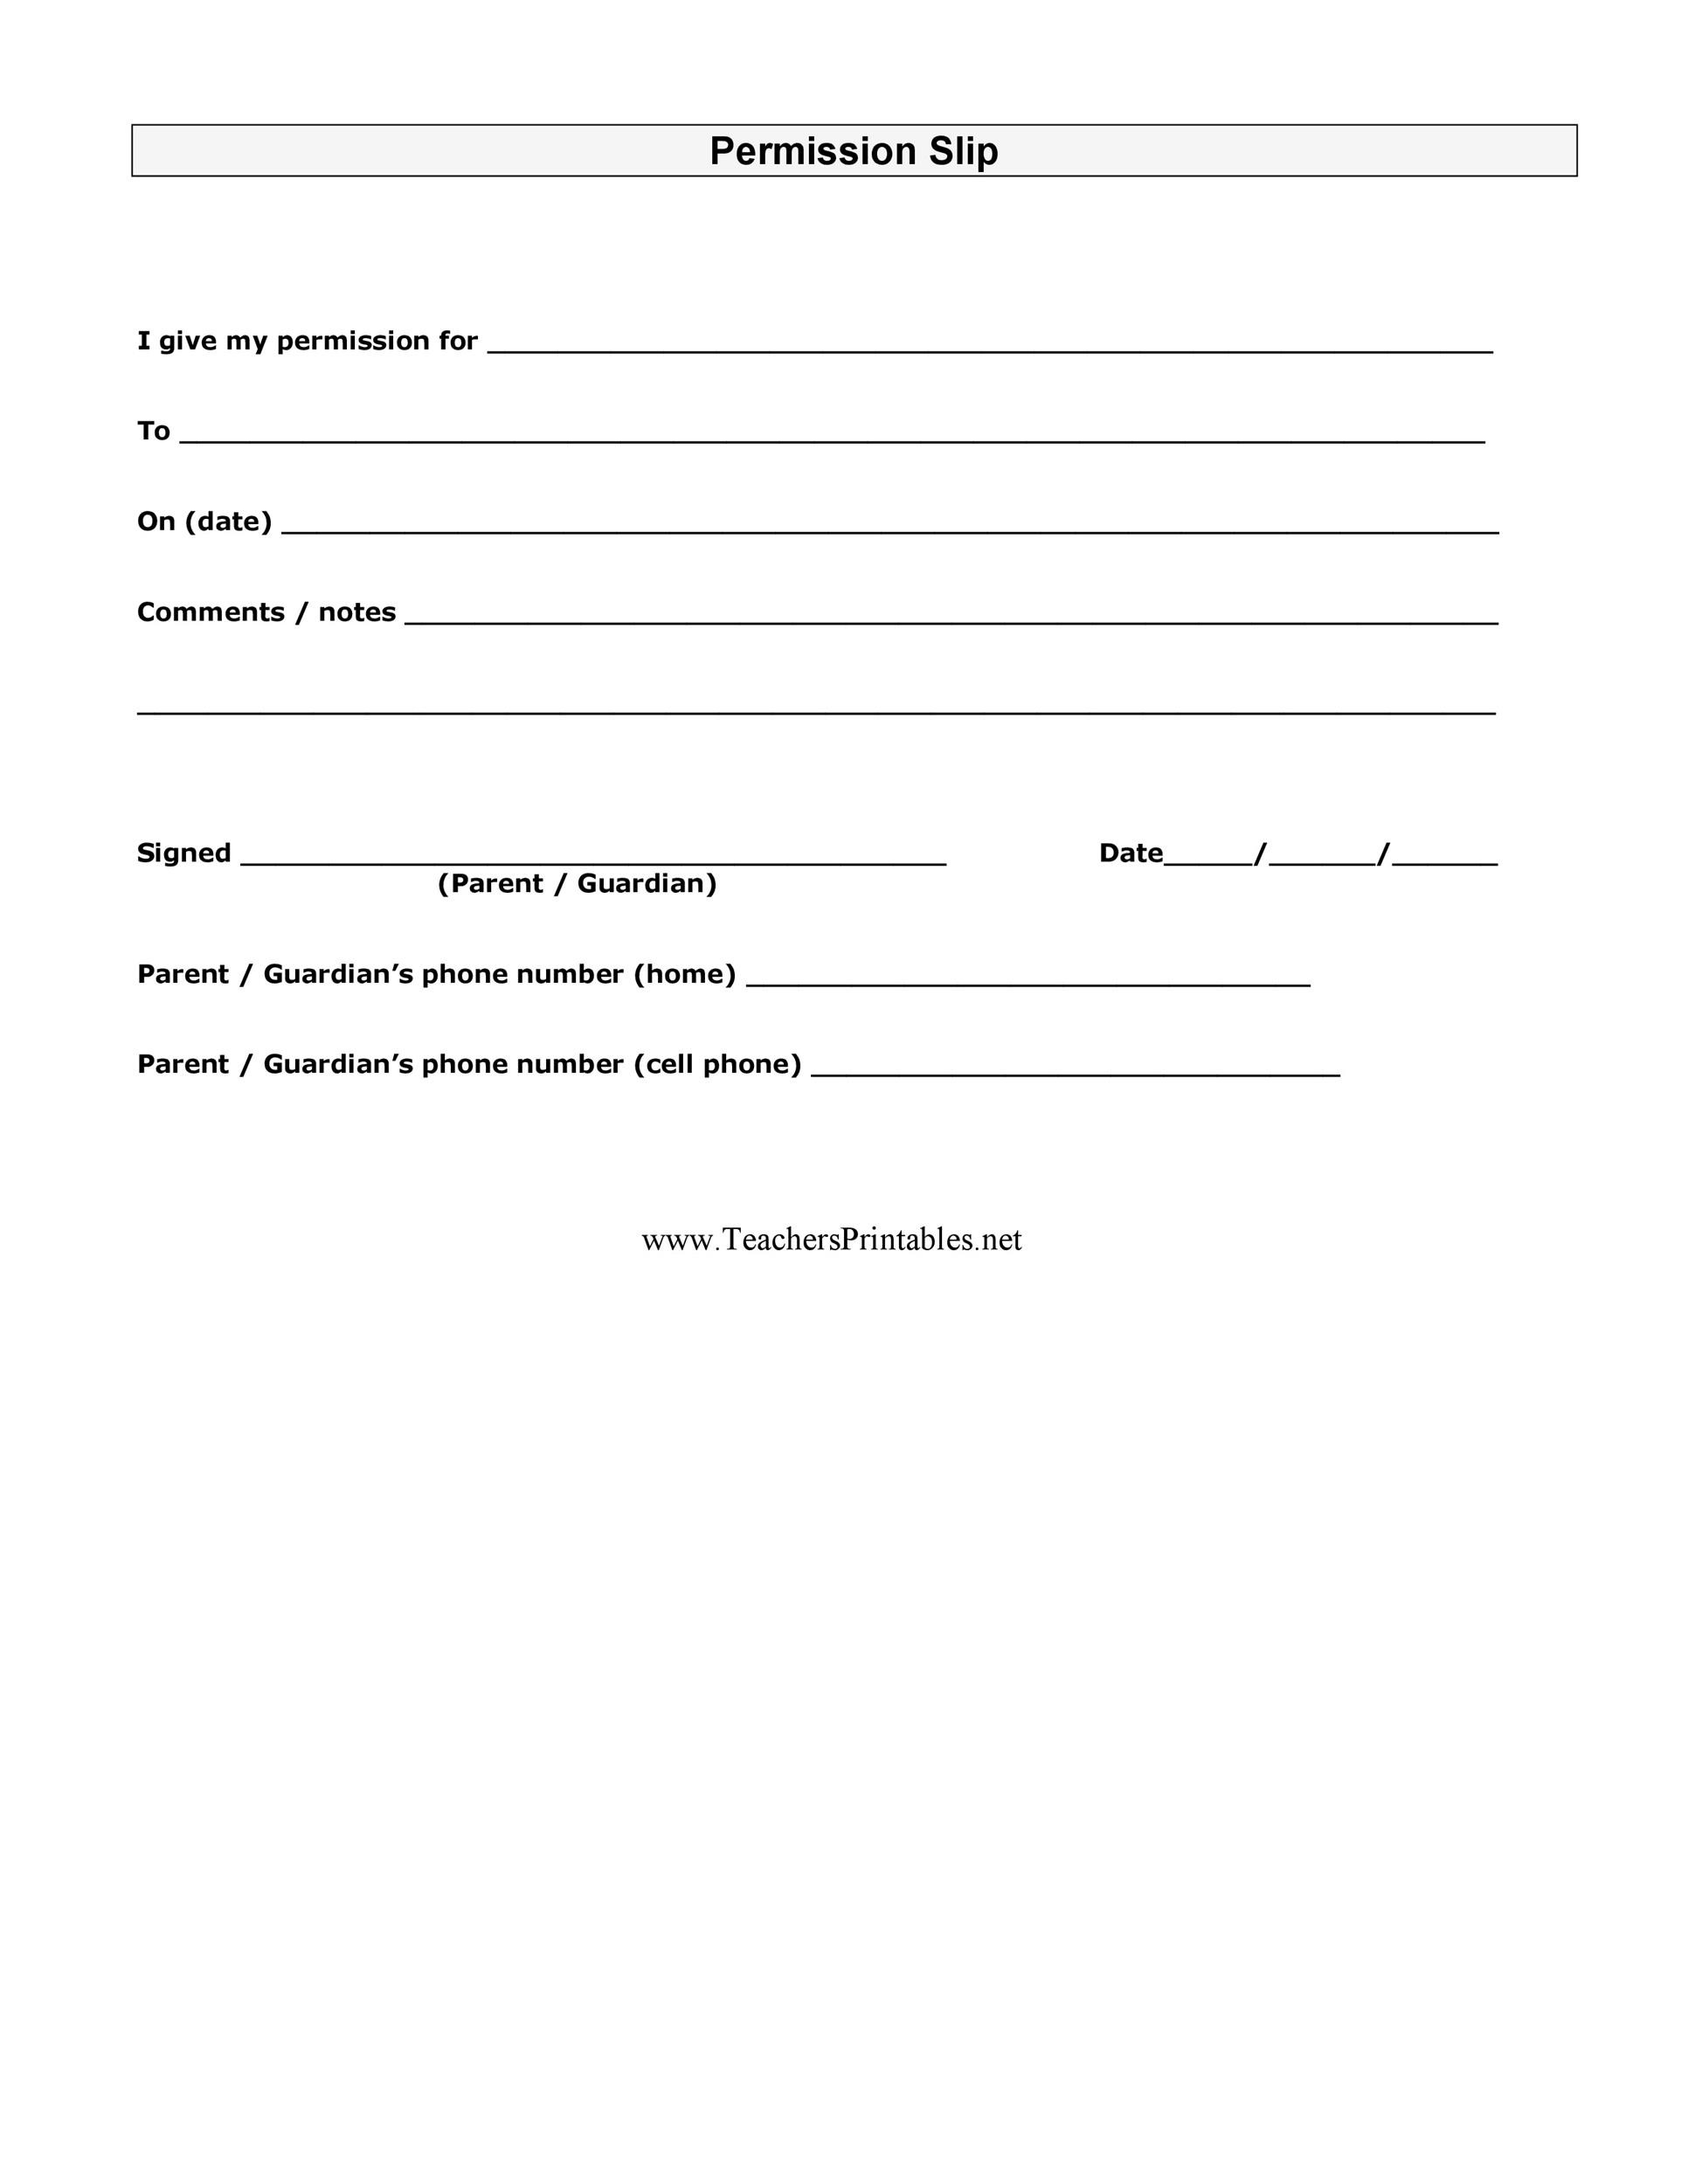 Image result for Permission Slip Template